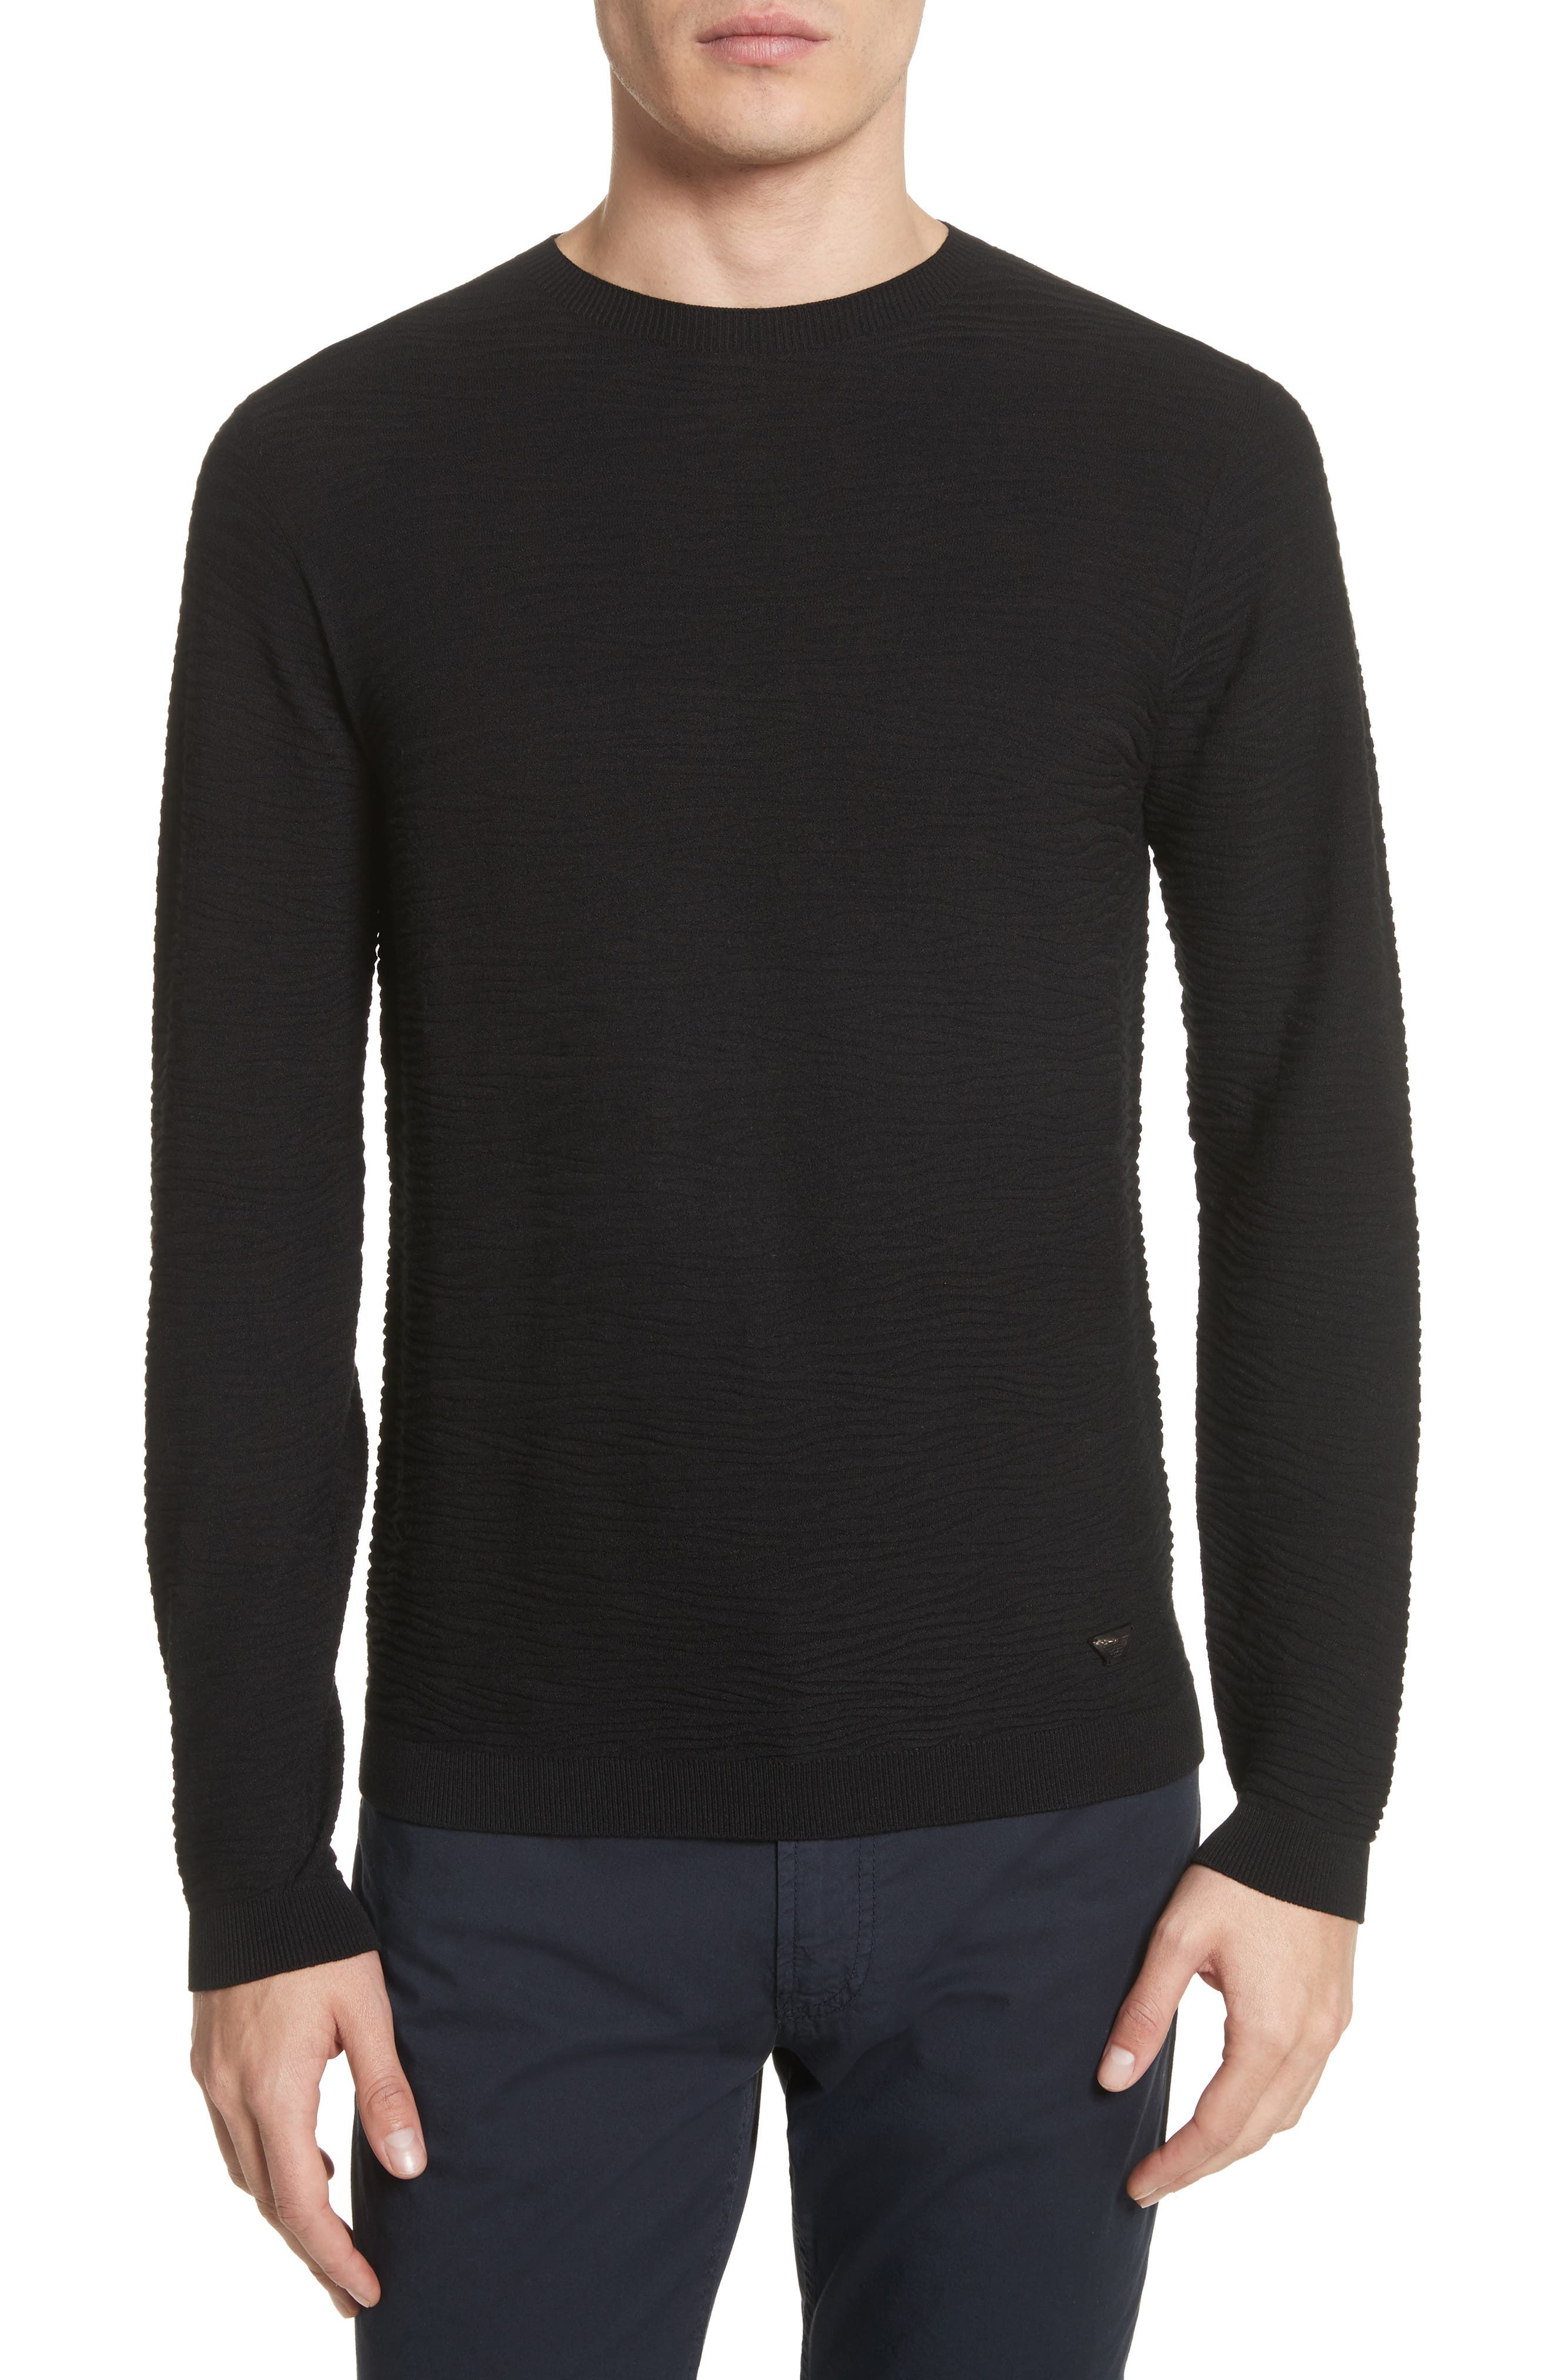 Alternate Image 1 Selected - Emporio Armani Slim Fit Allover Links Sweater